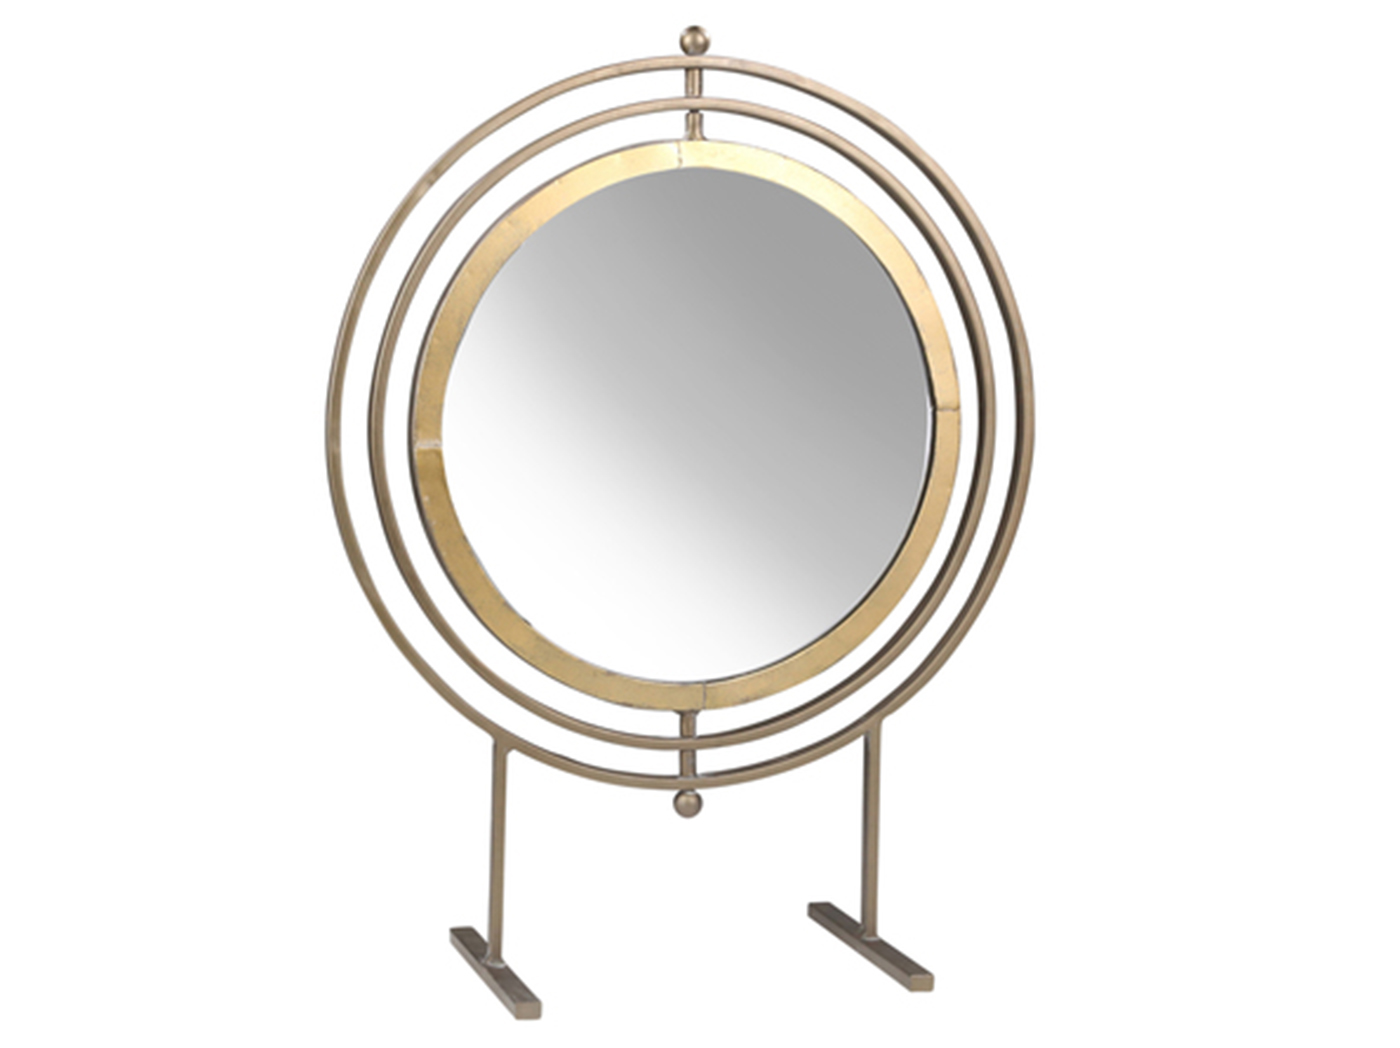 "Round Gold Finish Metal Tabletop Mirror 16.5""W x 21.25""H"